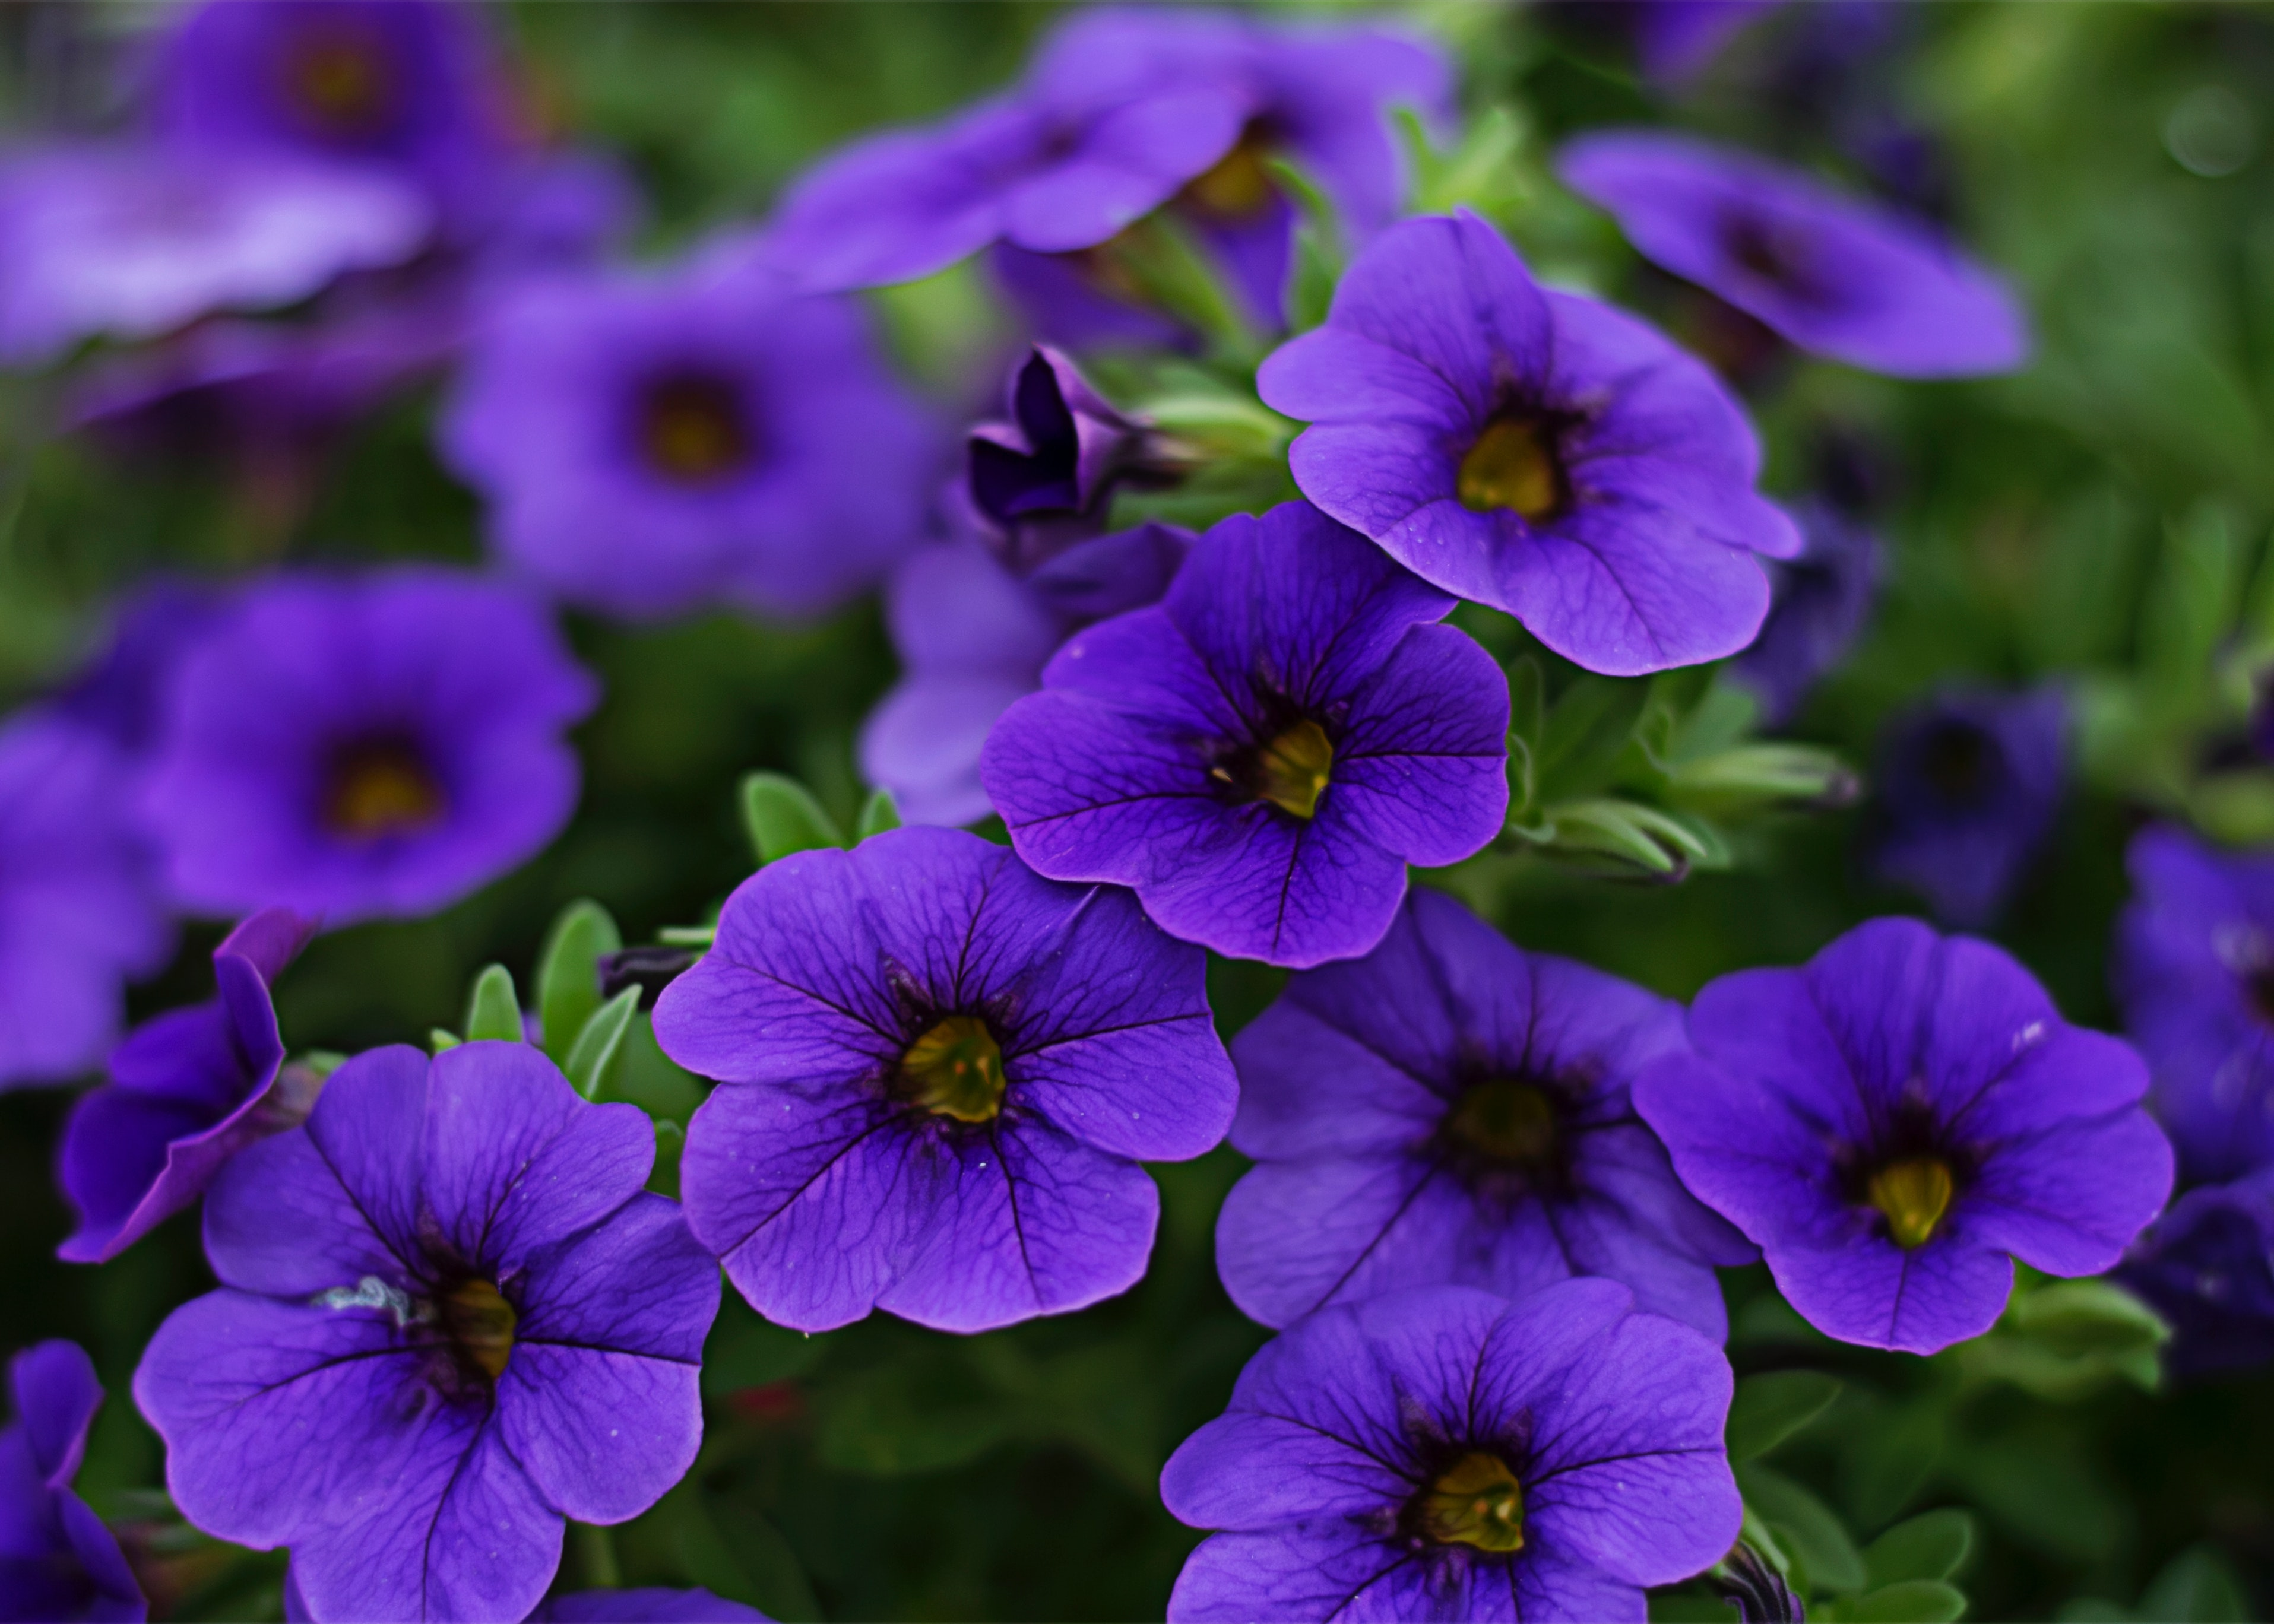 Find The Best Pictures Of Purple Flowers Diffe Kinds And Them For Free You Can Also Use All Flower Images Commercial